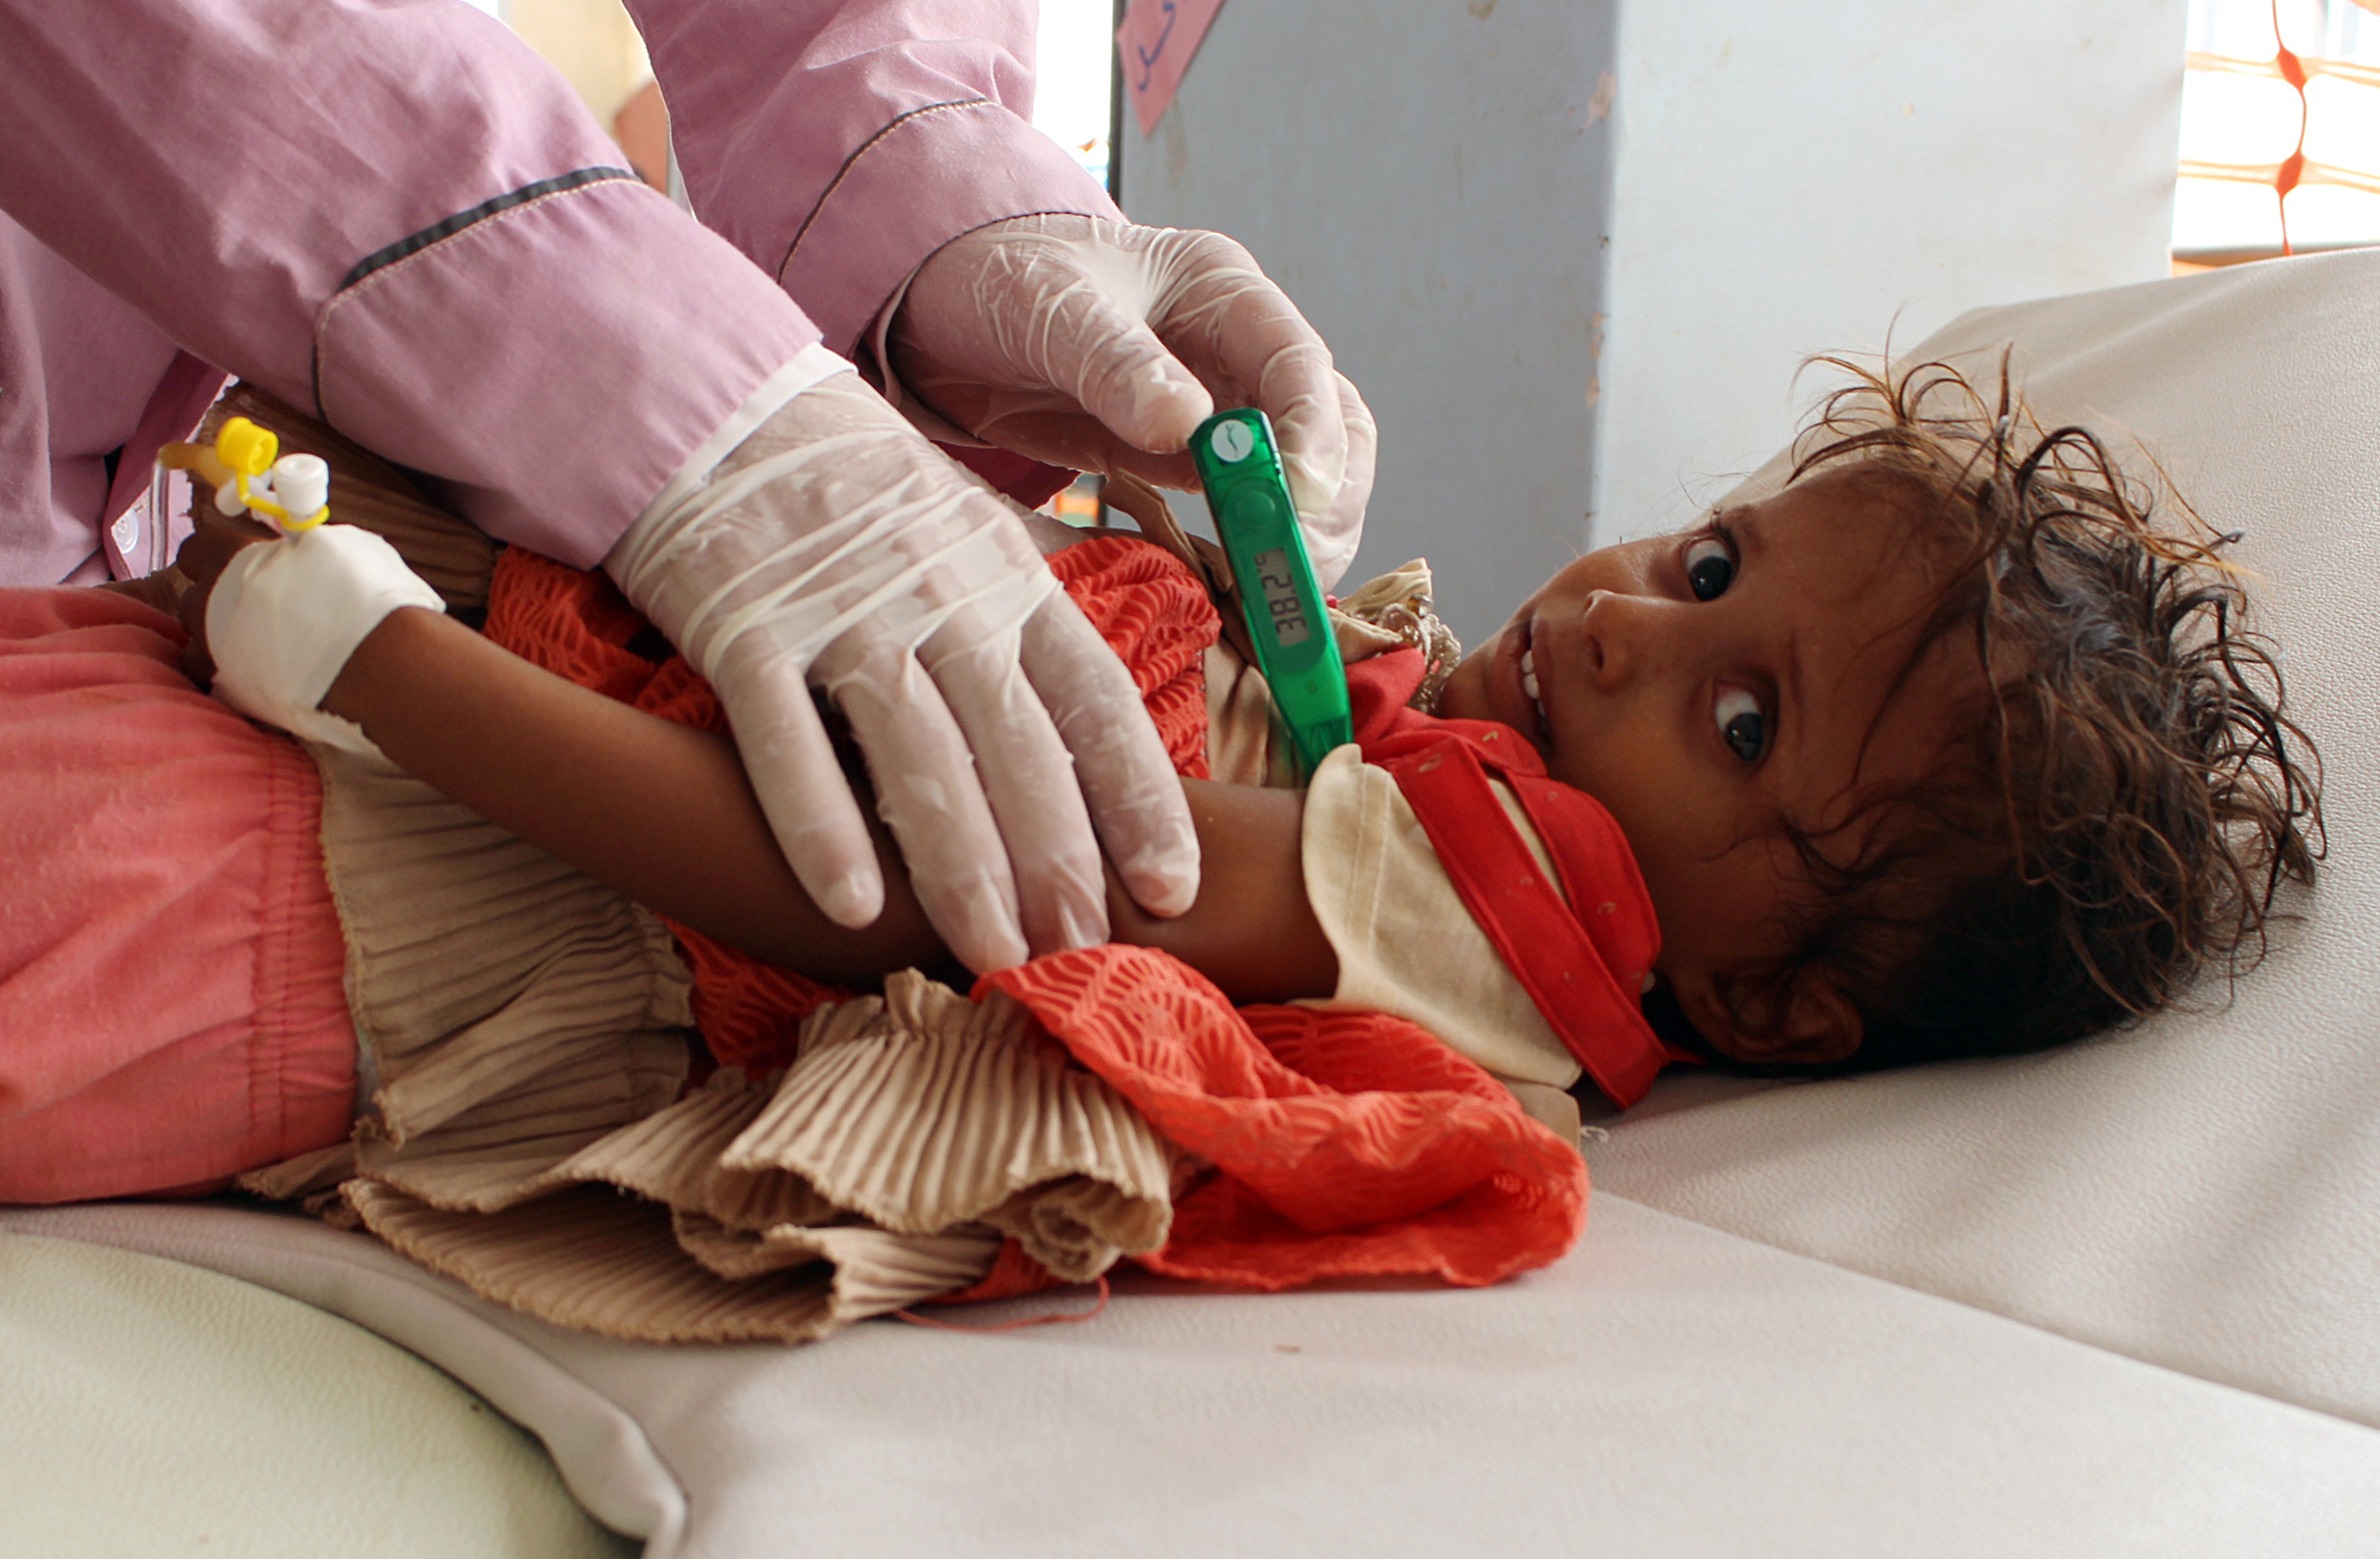 A Yemeni child suspected of being infected with cholera is checked by a doctor at a makeshift hospital operated by Doctors Without Borders (MSF) in the northern district of Abs in Yemen's Hajjah province , on July 16, 2017.